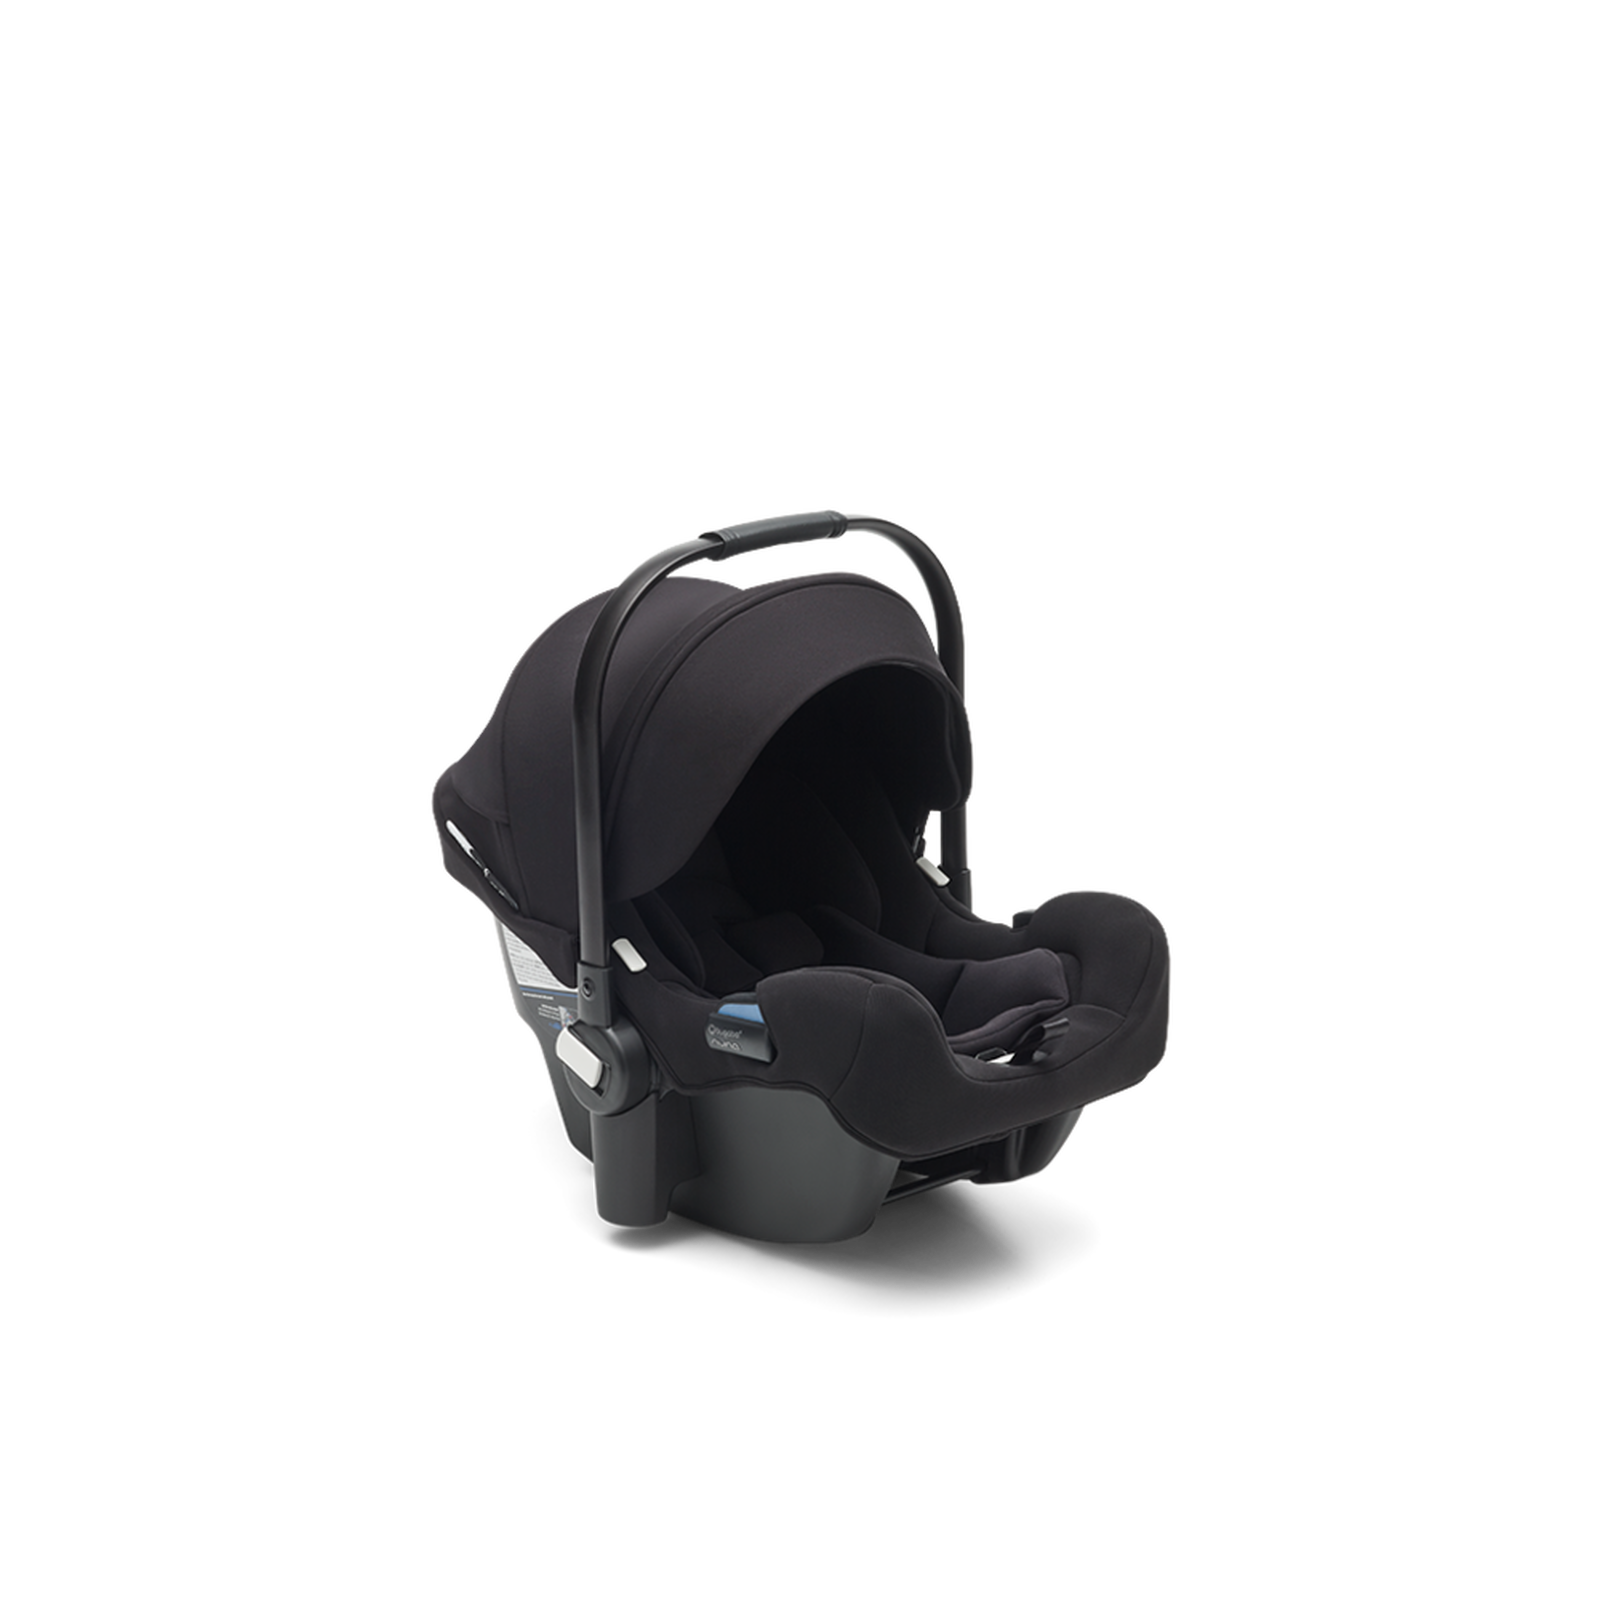 Original Turtle by Nuna car seat with base